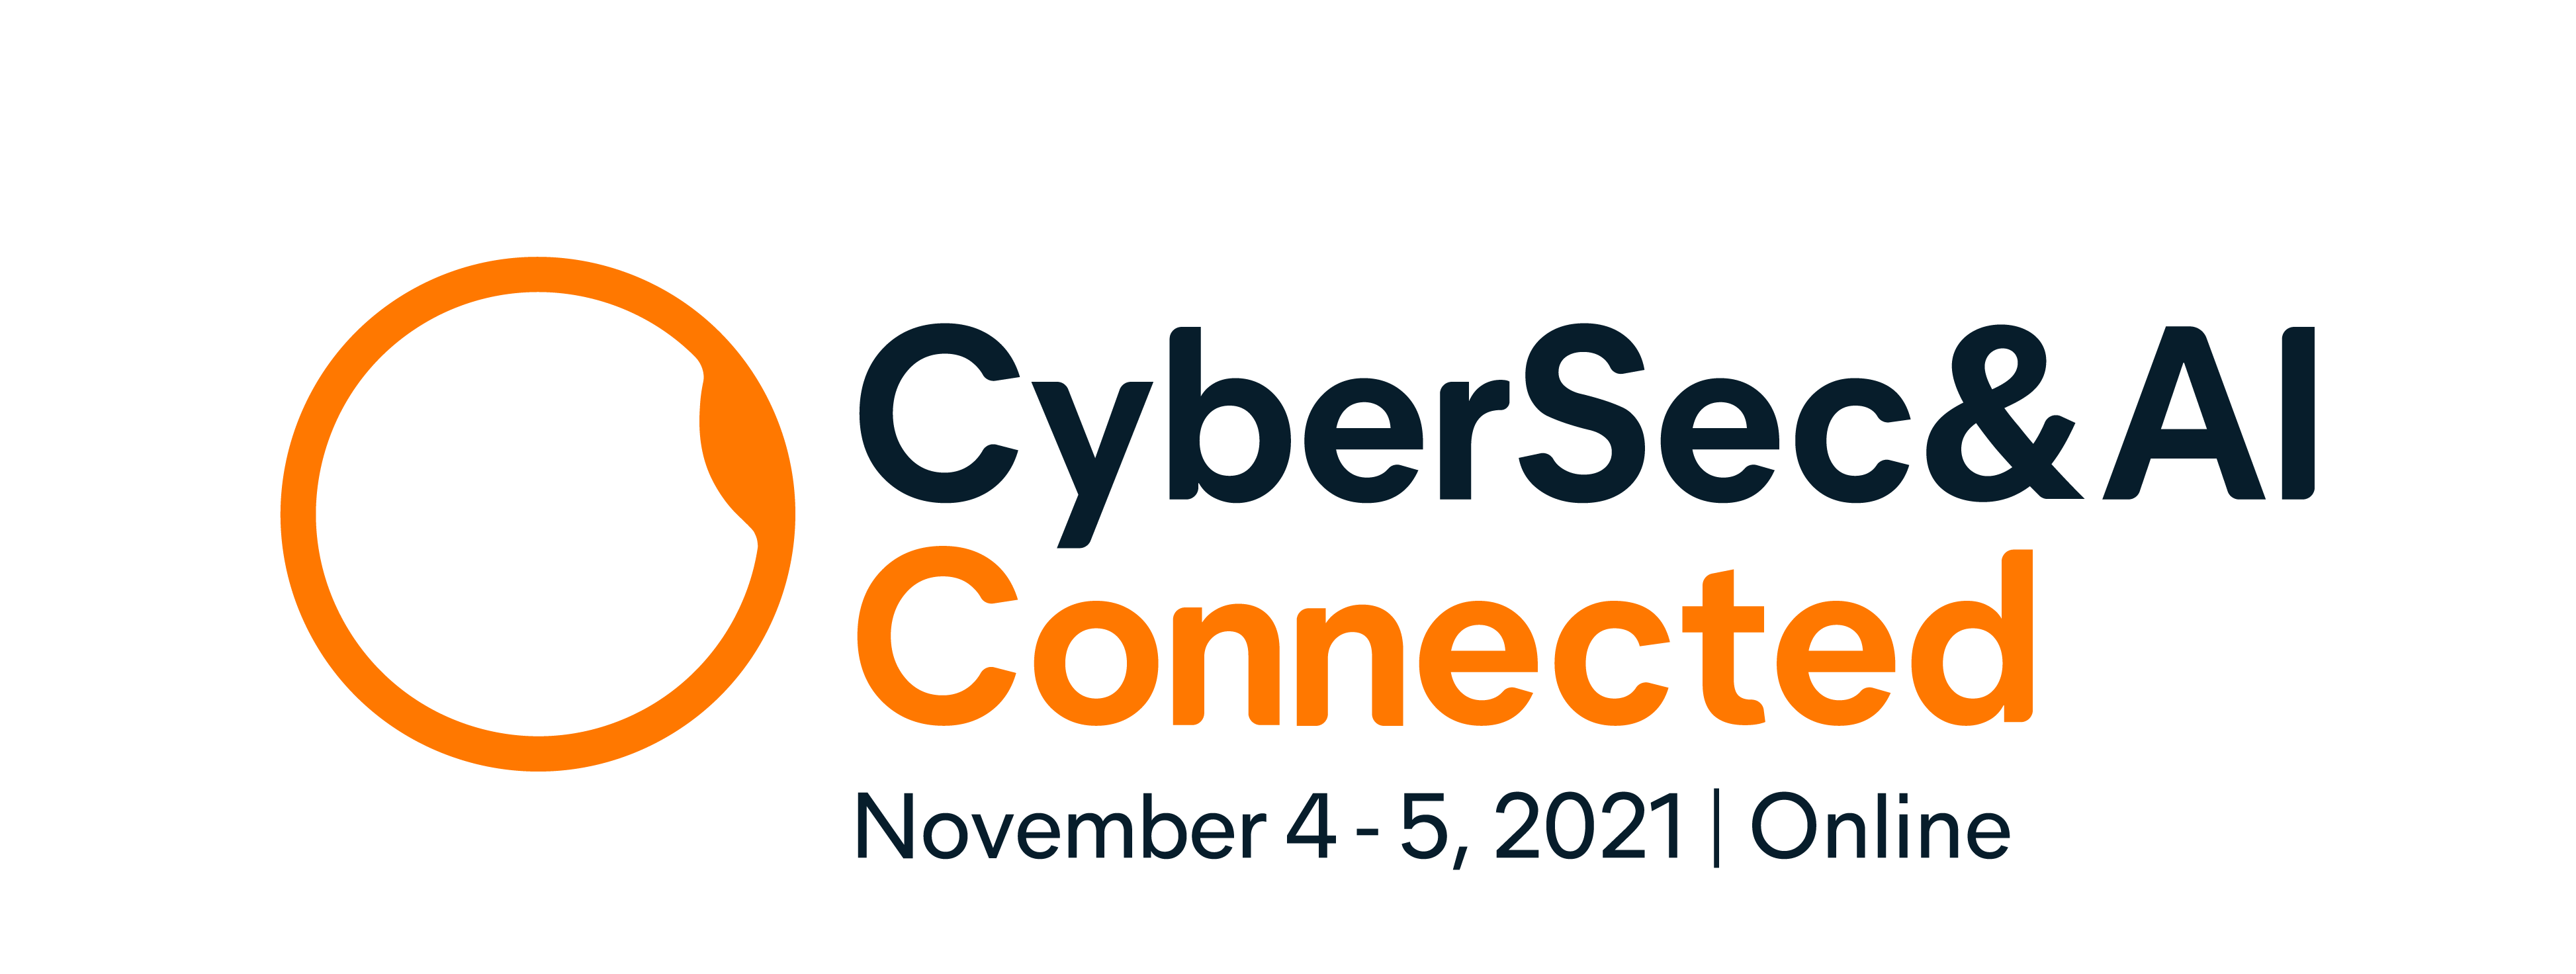 CyberSec&AI Connected